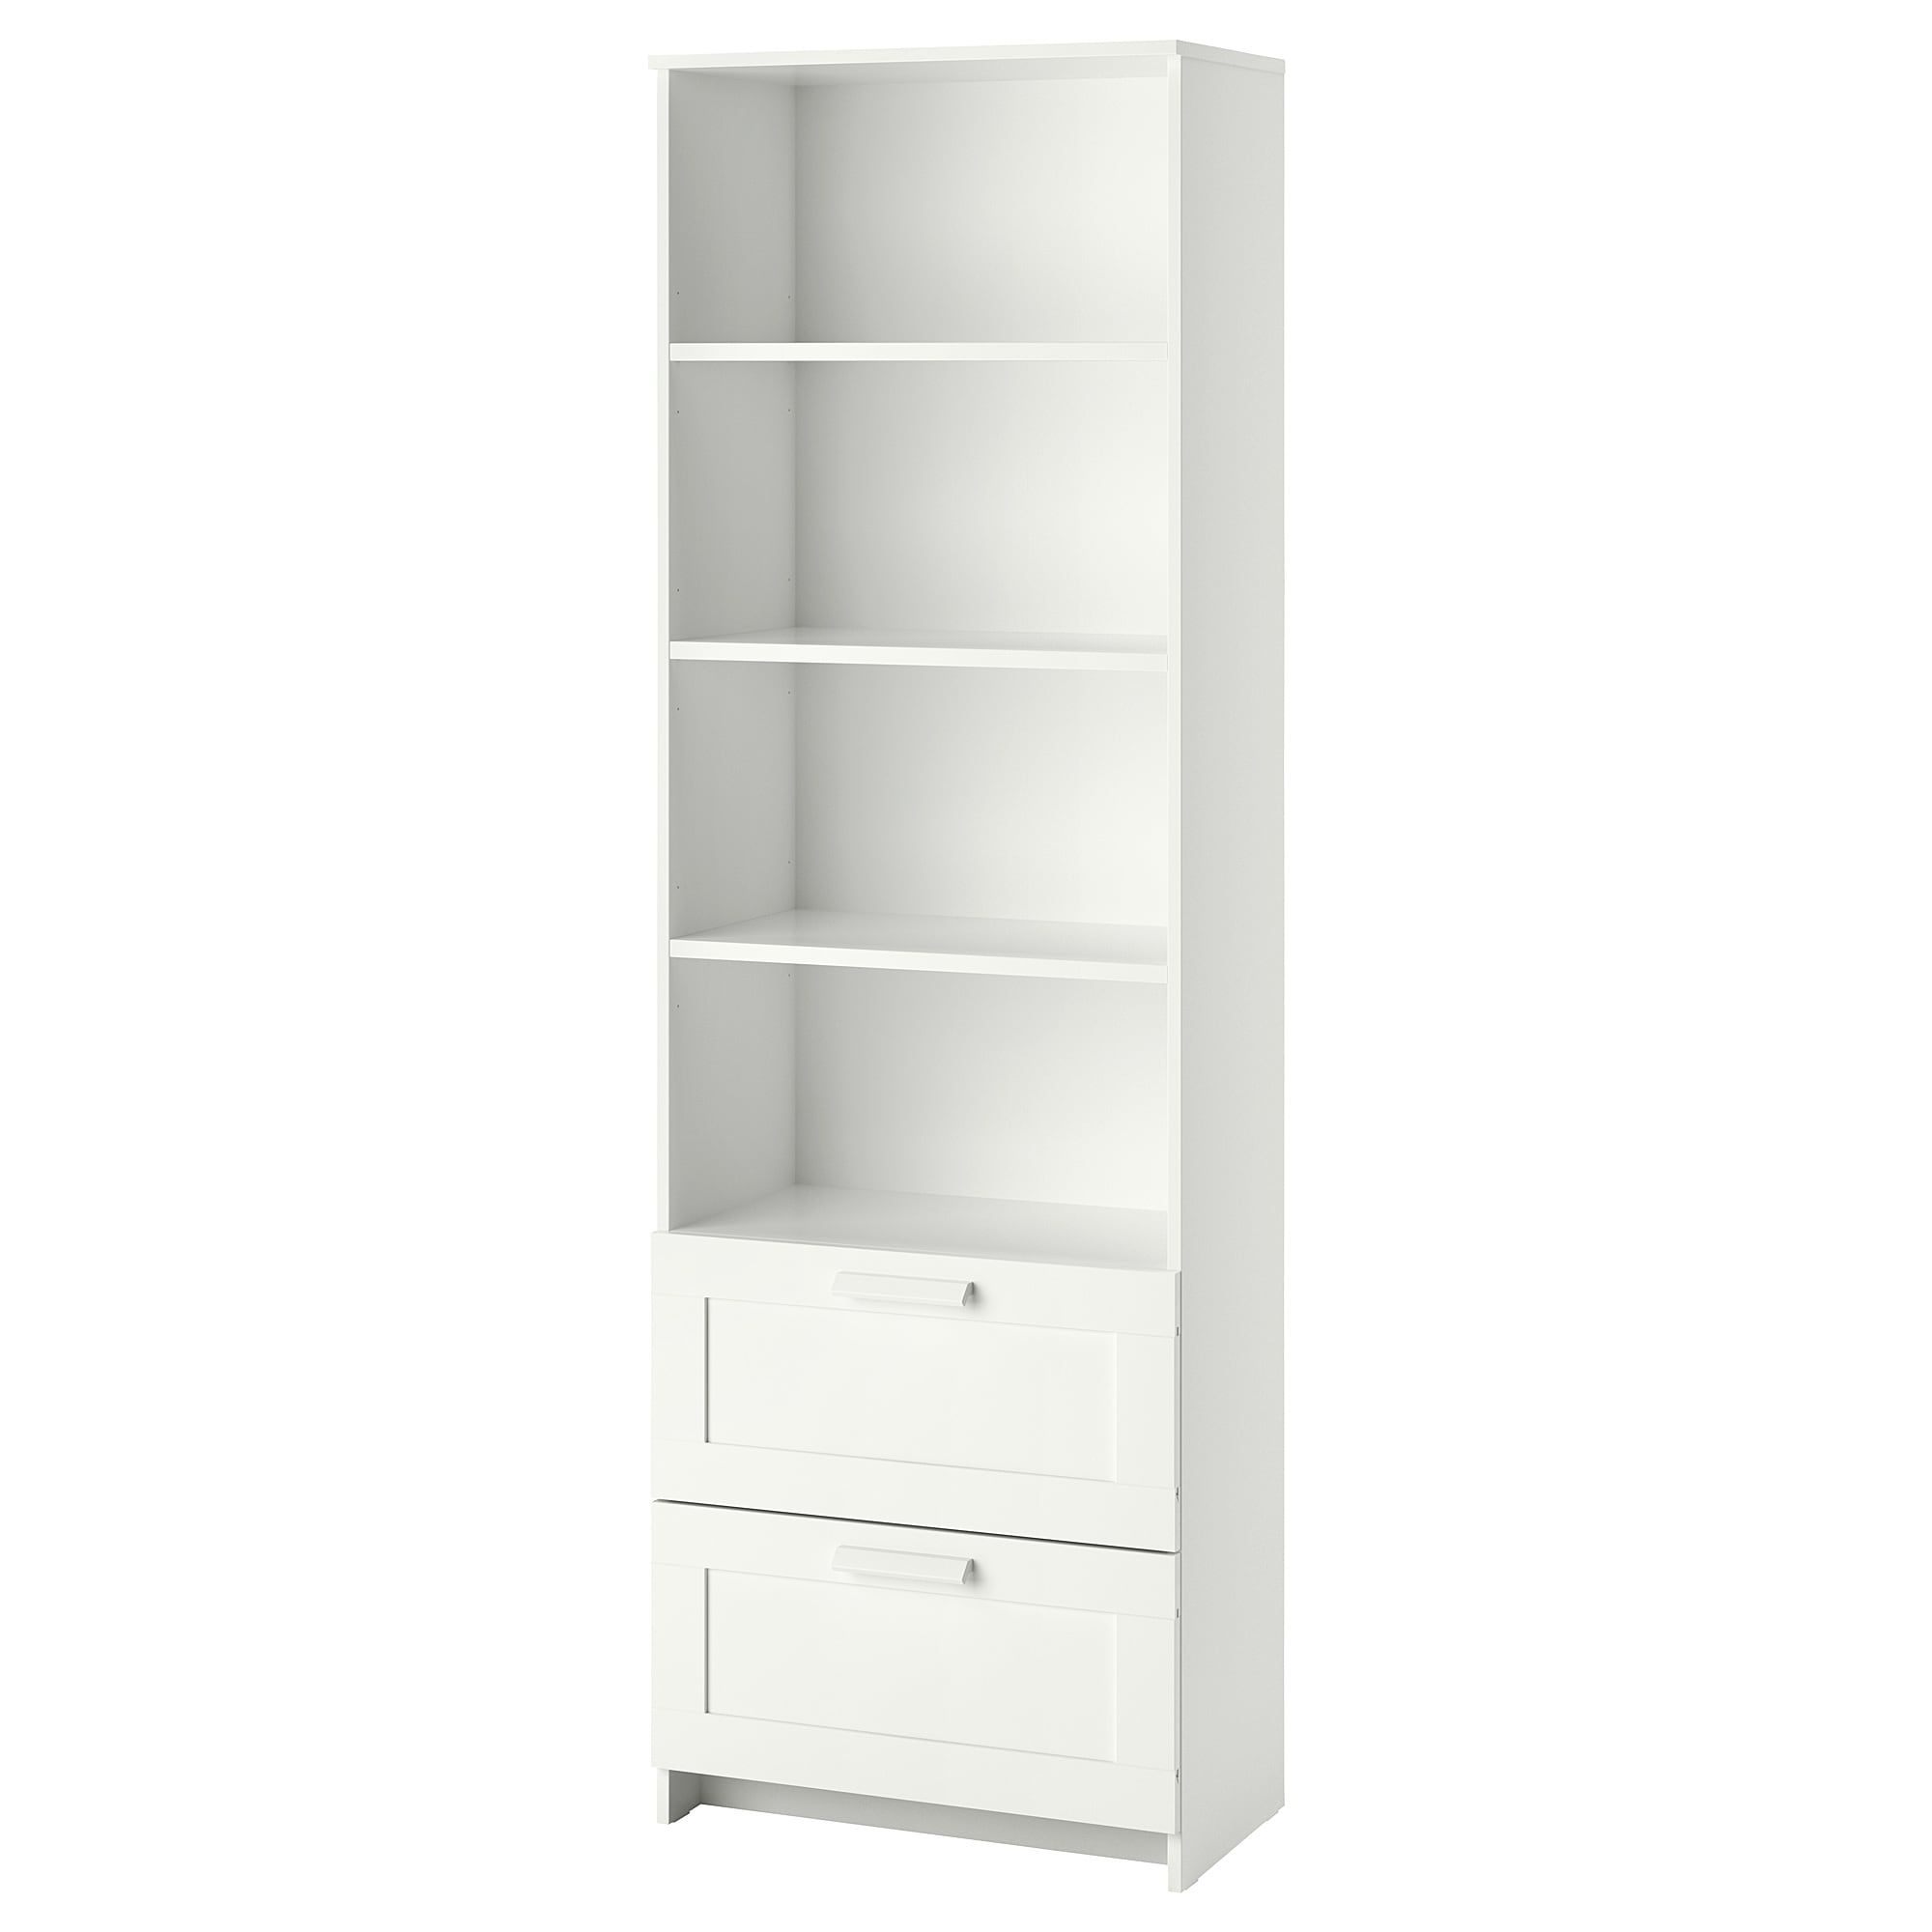 Ikea Regalsysteme Keller Bücherregal Brimnes Weiß In 2019 Products Regal Ikea Und Ikea